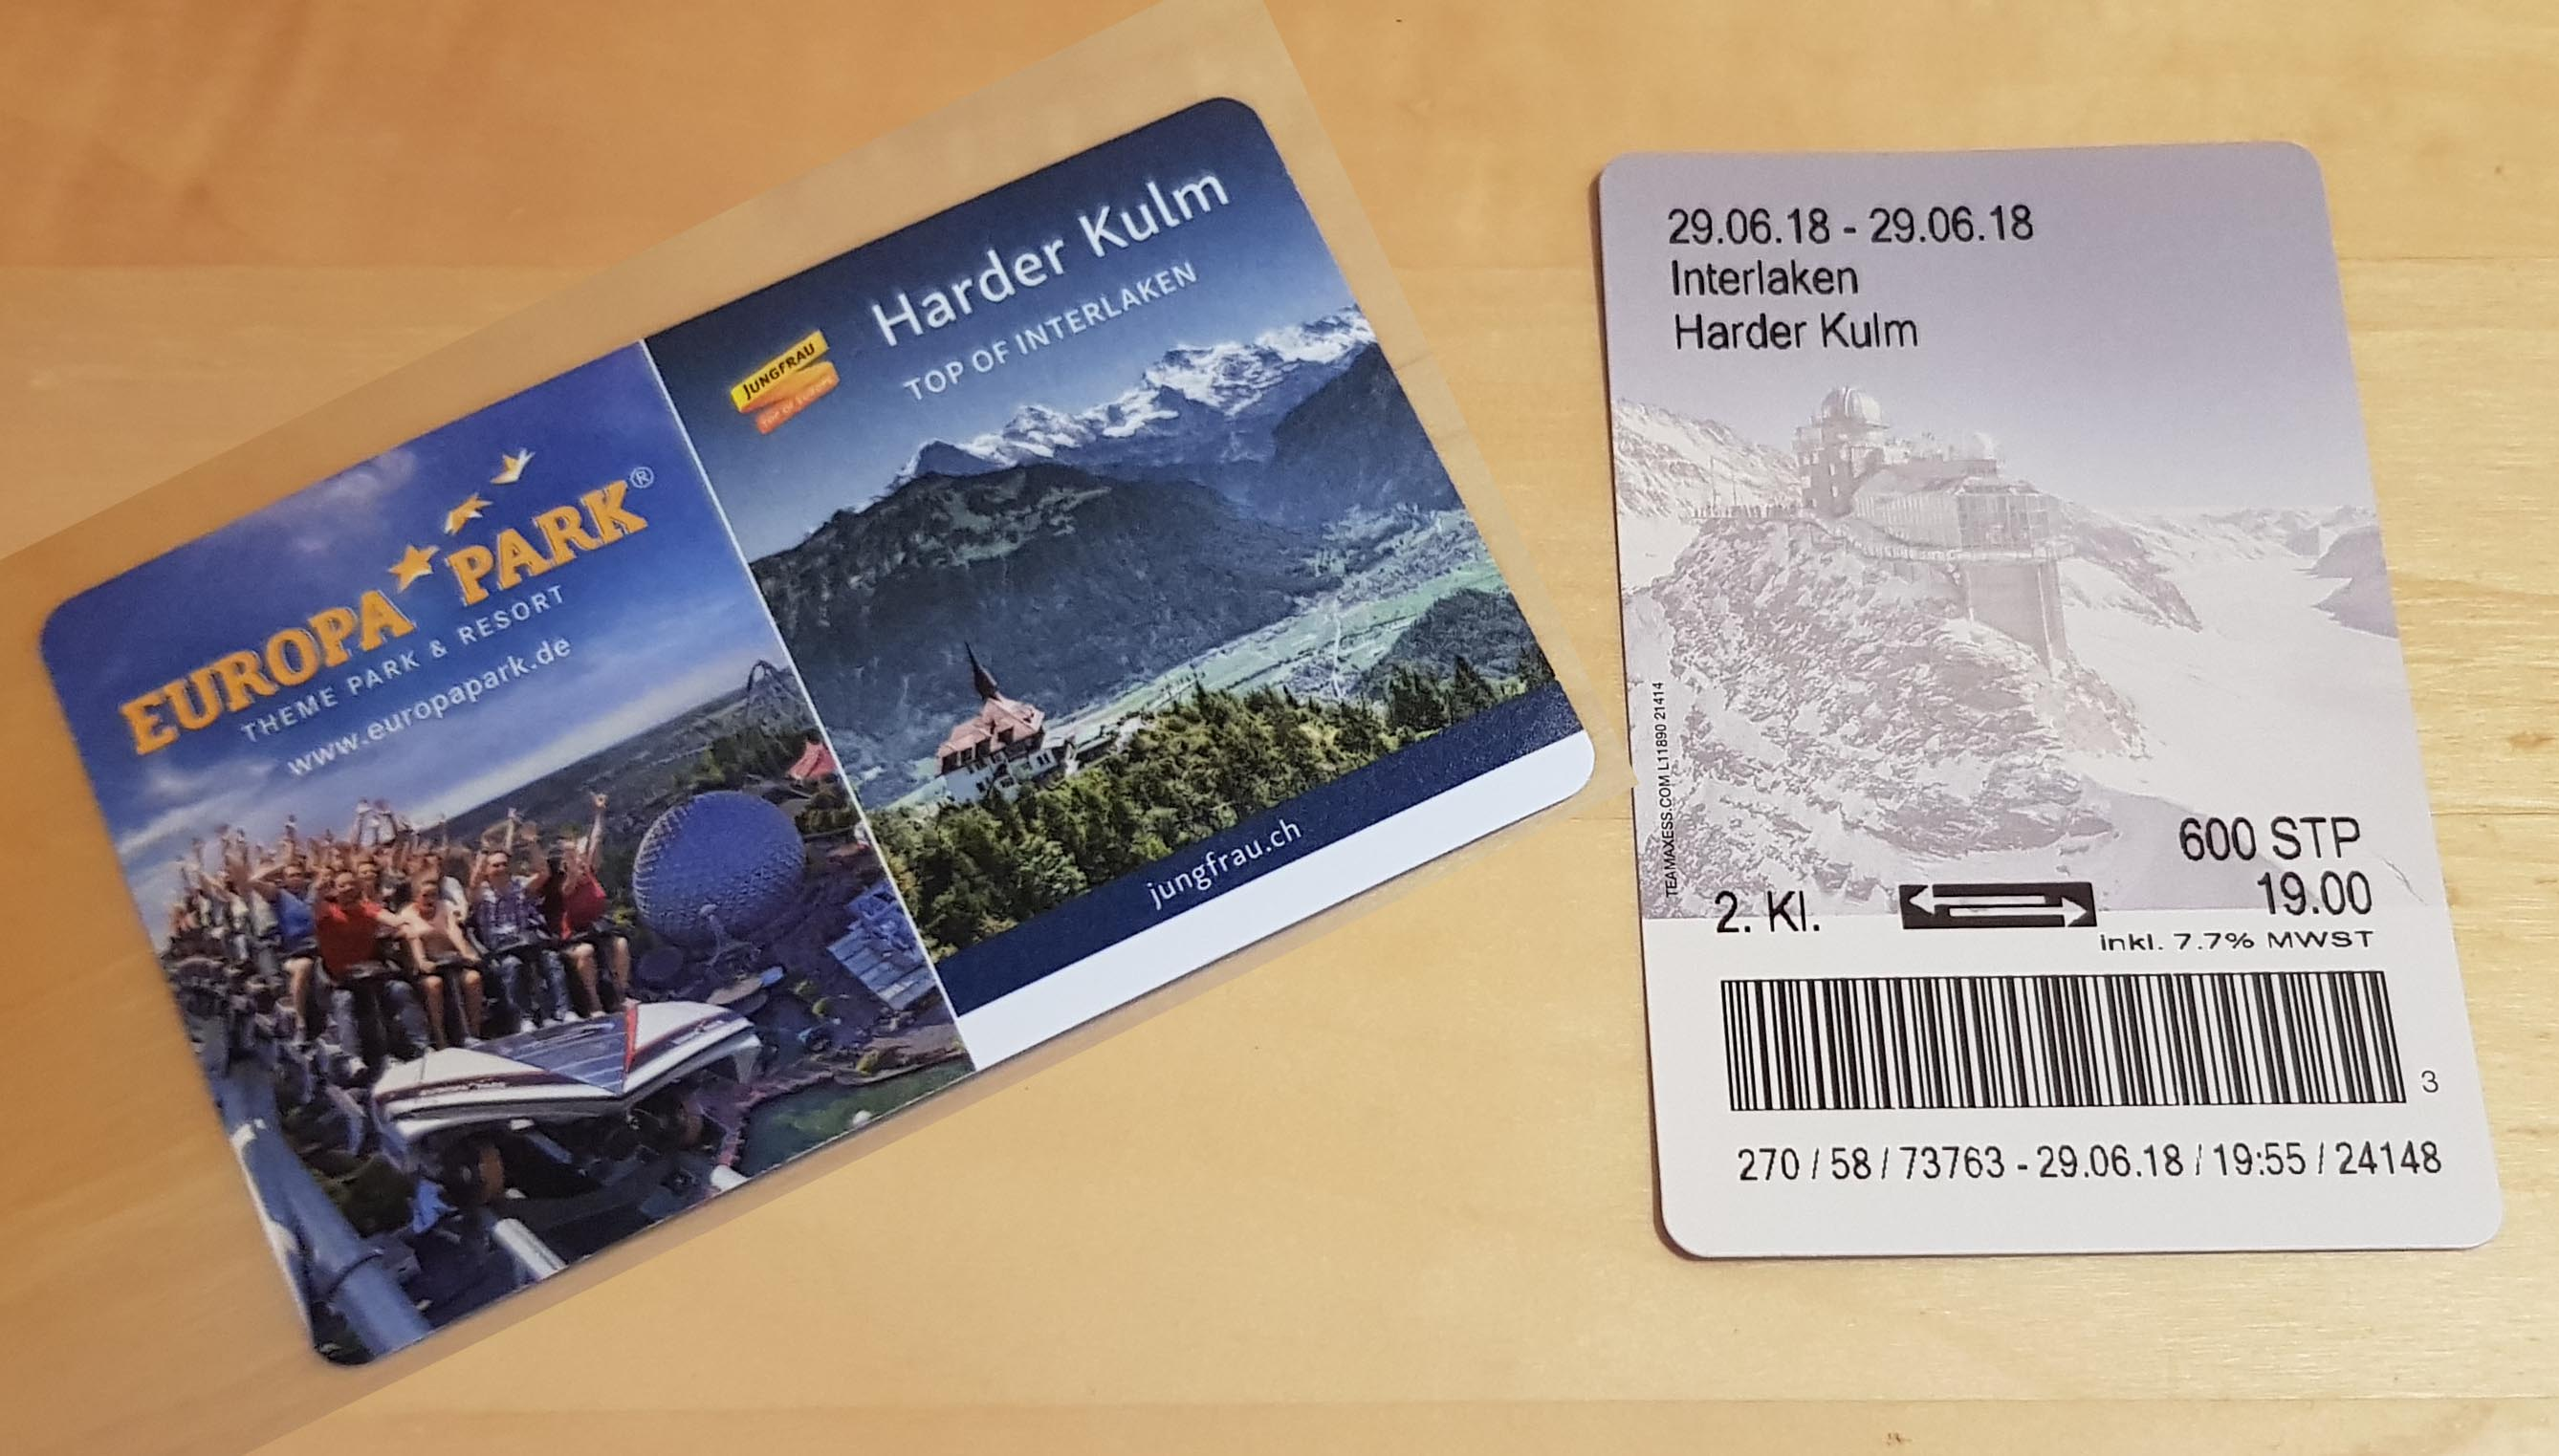 Tickets for Harder Kulm Funicular ride